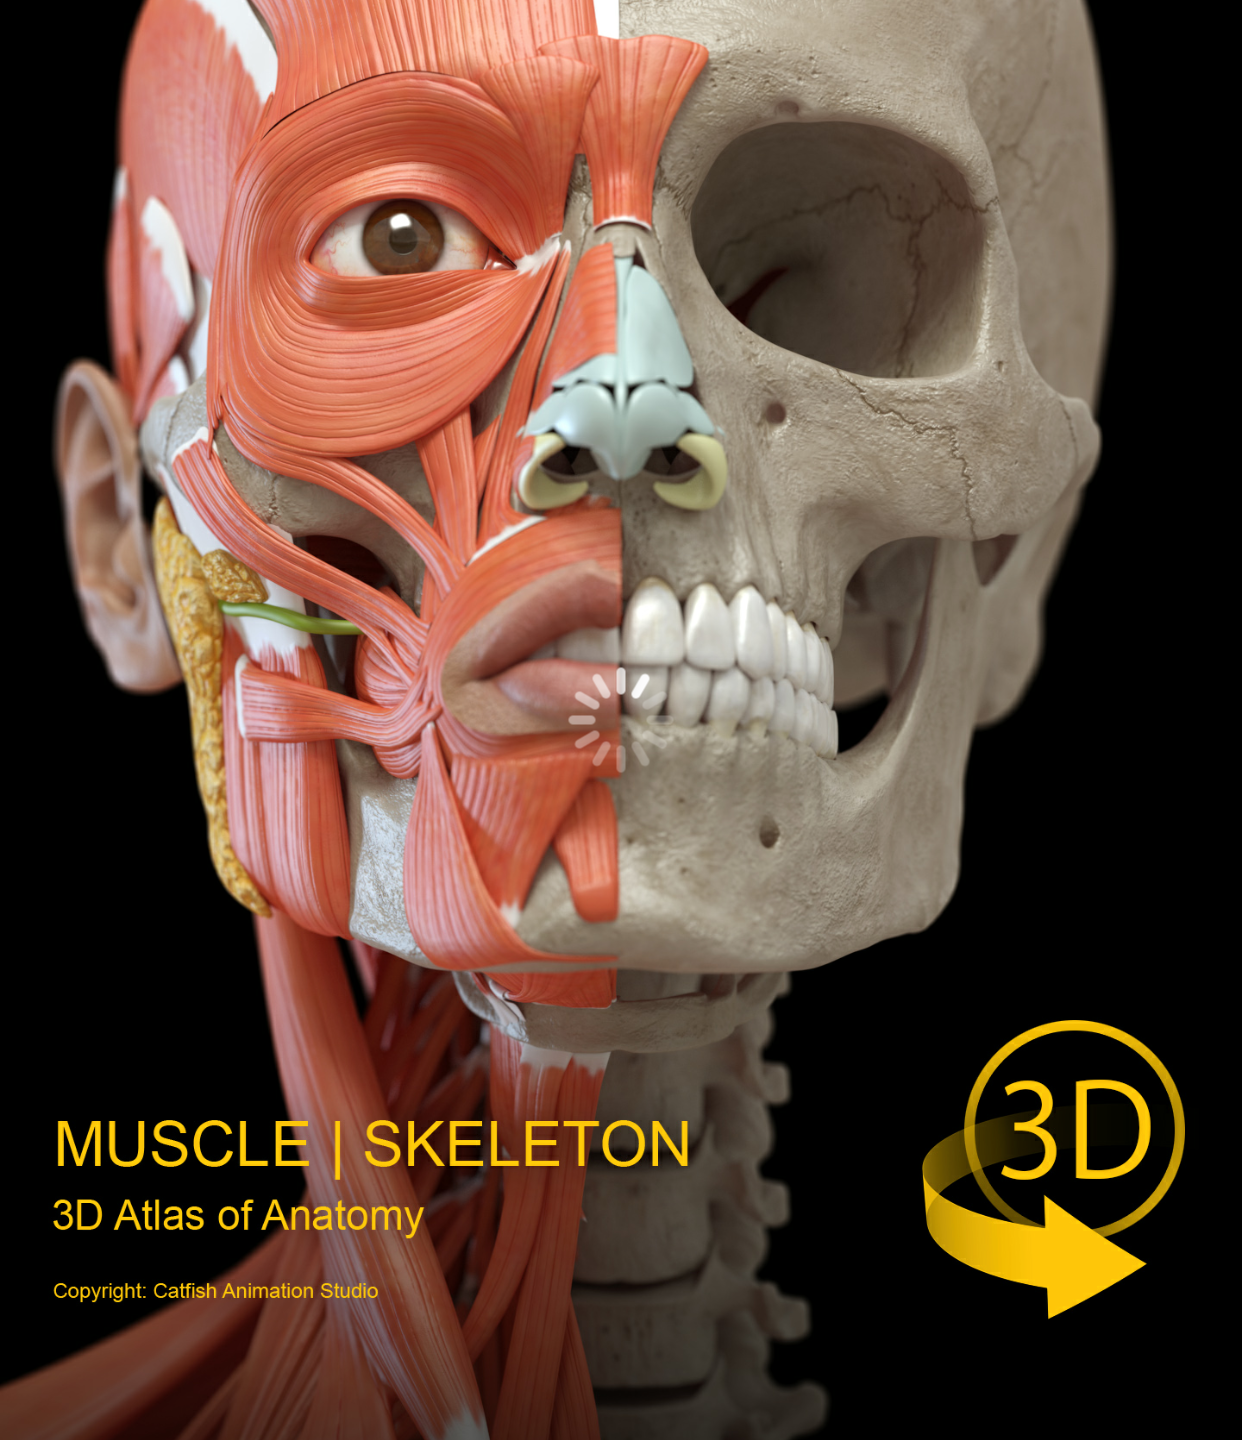 Muscle Anatomy 3D